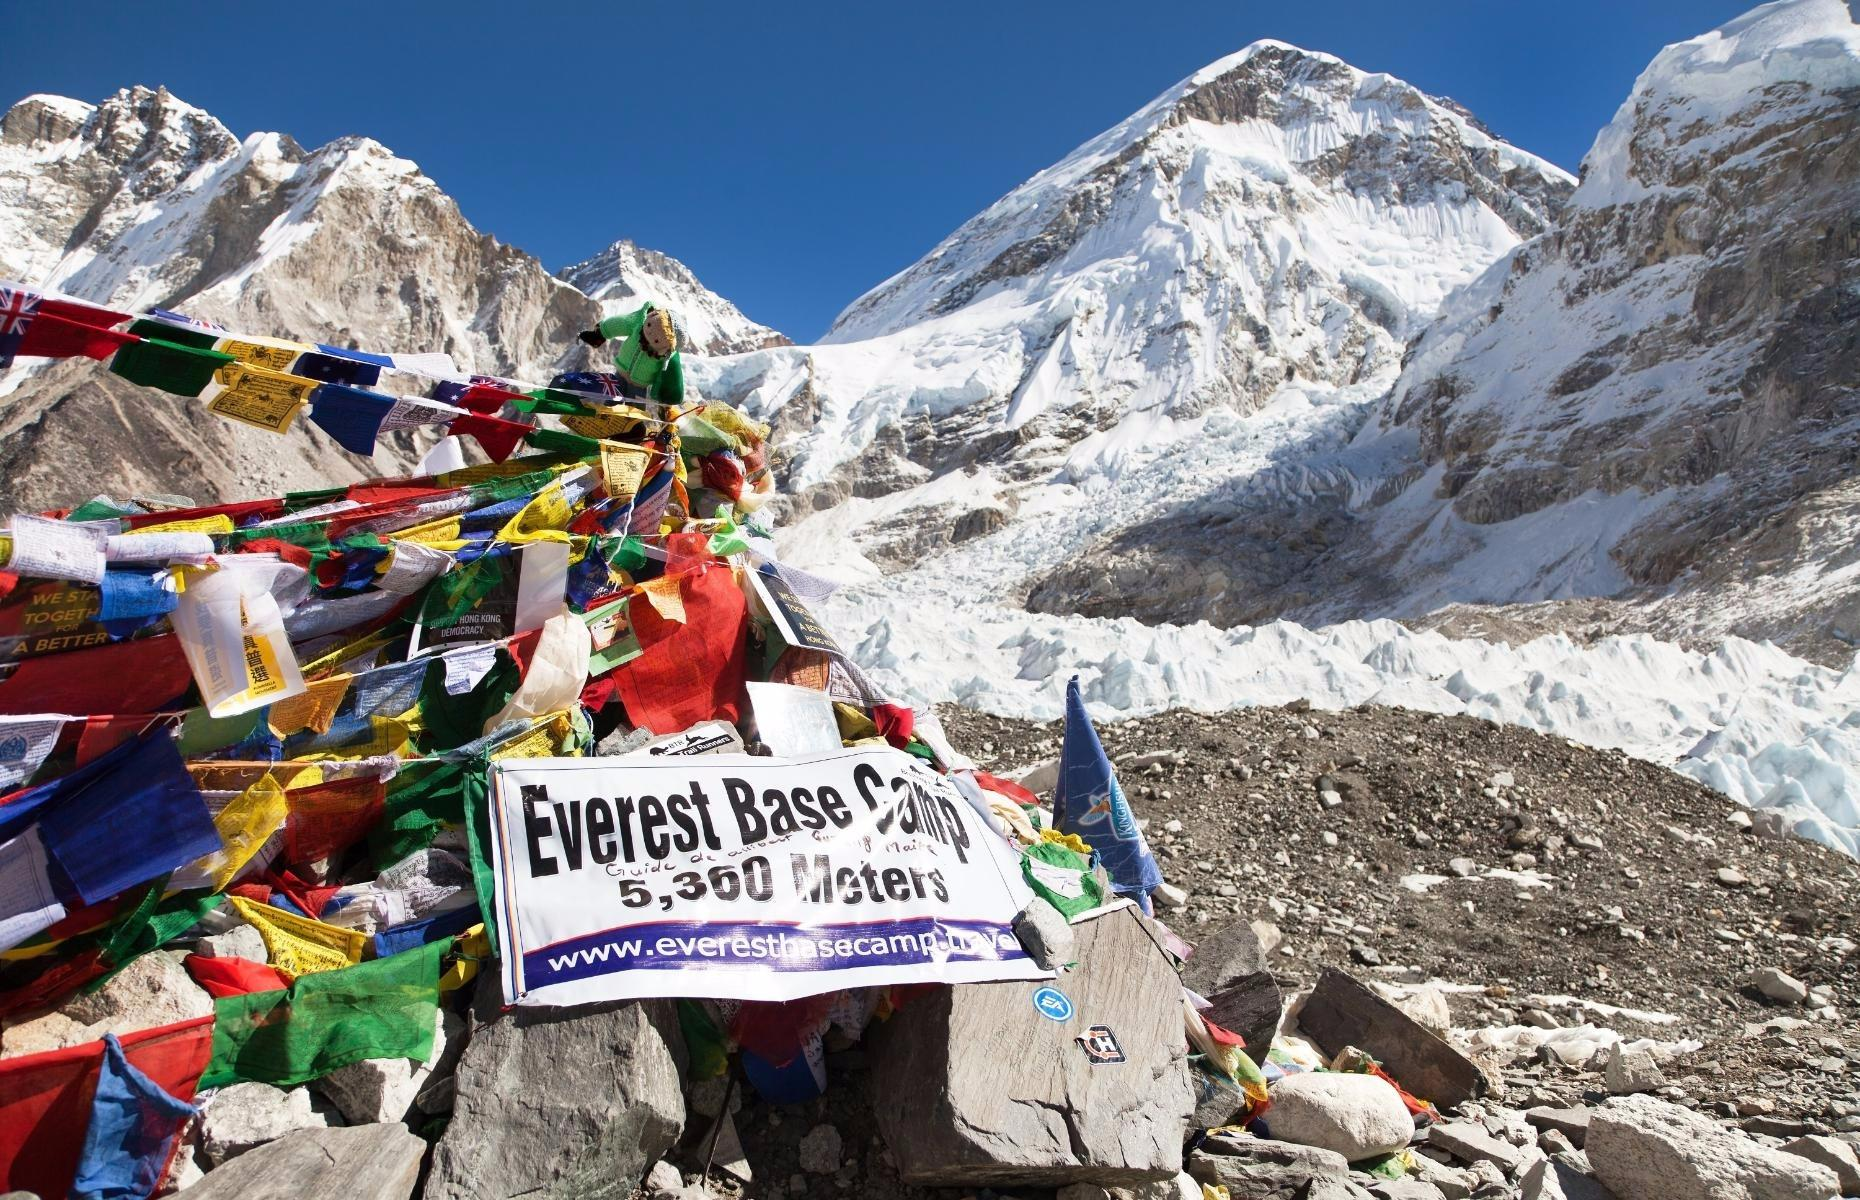 Everest Base Camp Trek - White Himalaya Trekinng in Nepal